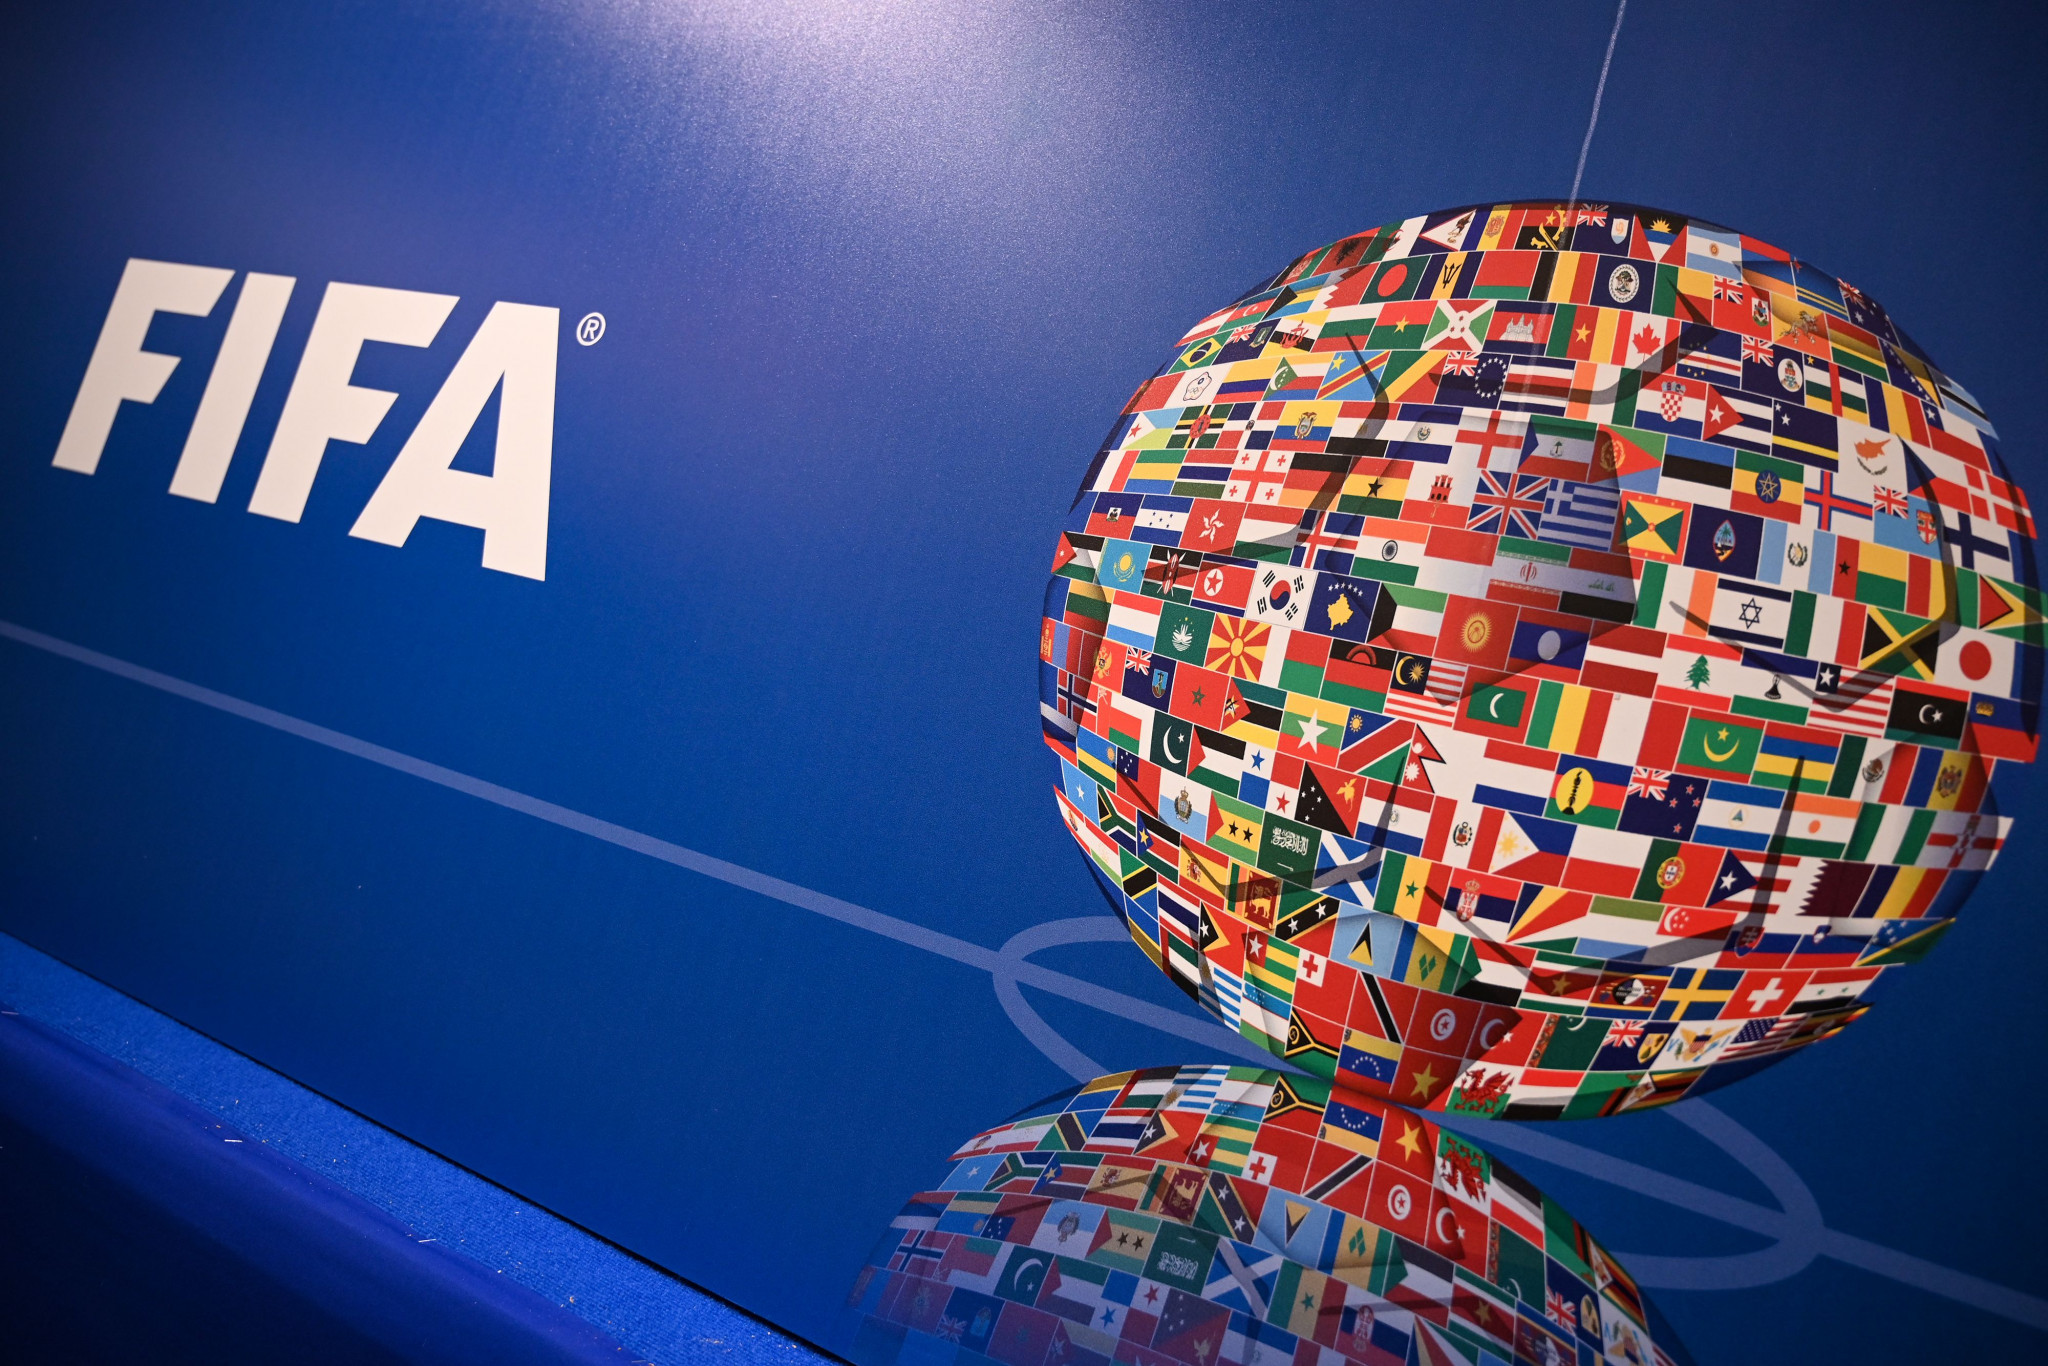 Financial statements covering 2020 appear to show that FIFA generated more revenue from video gaming than football ©Getty Images